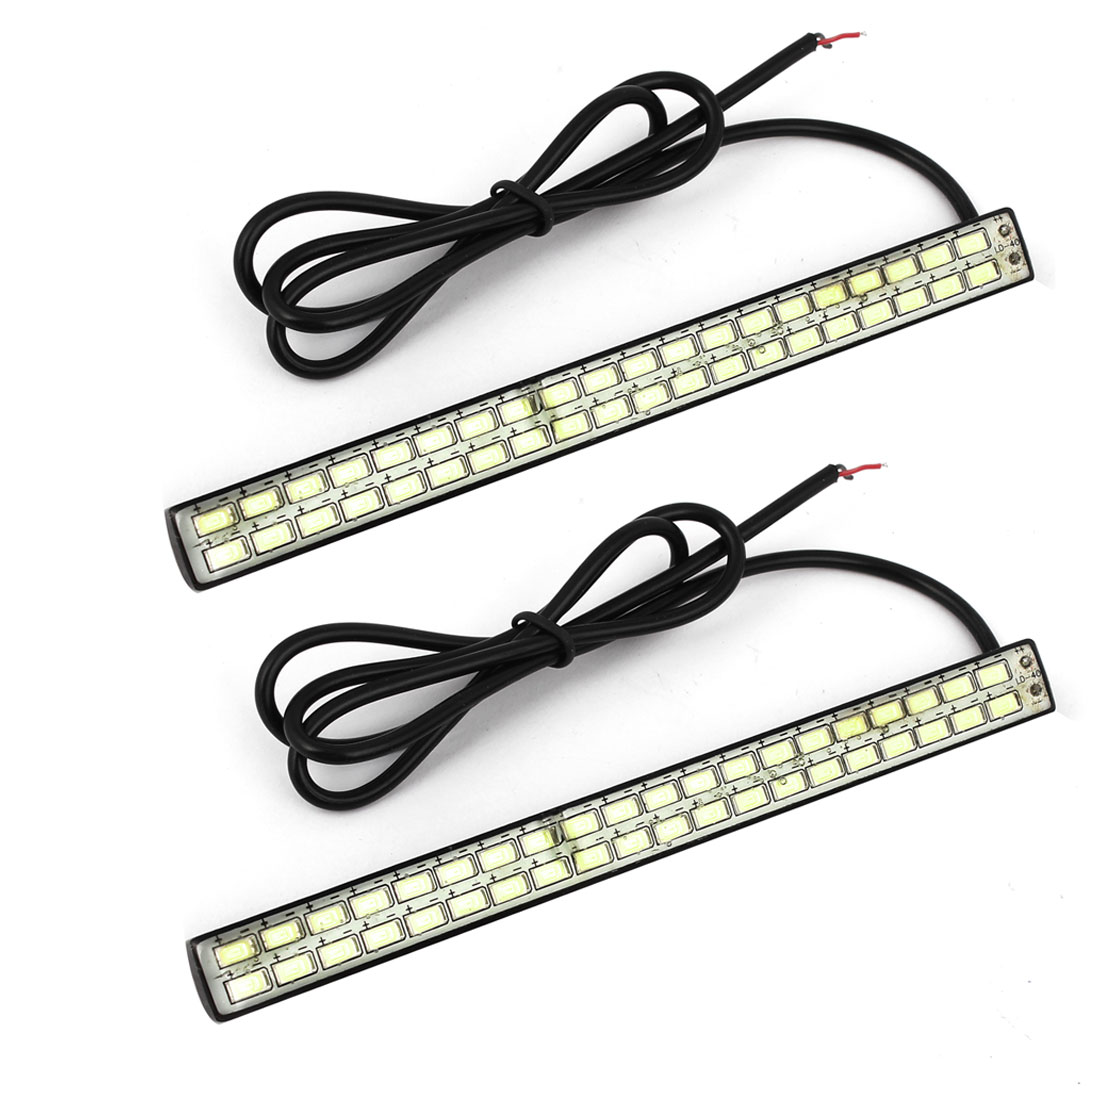 2 Pcs DC 12V 2 Rows White 5630 SMD 42 LED Car Daytime Running Lights Lamps